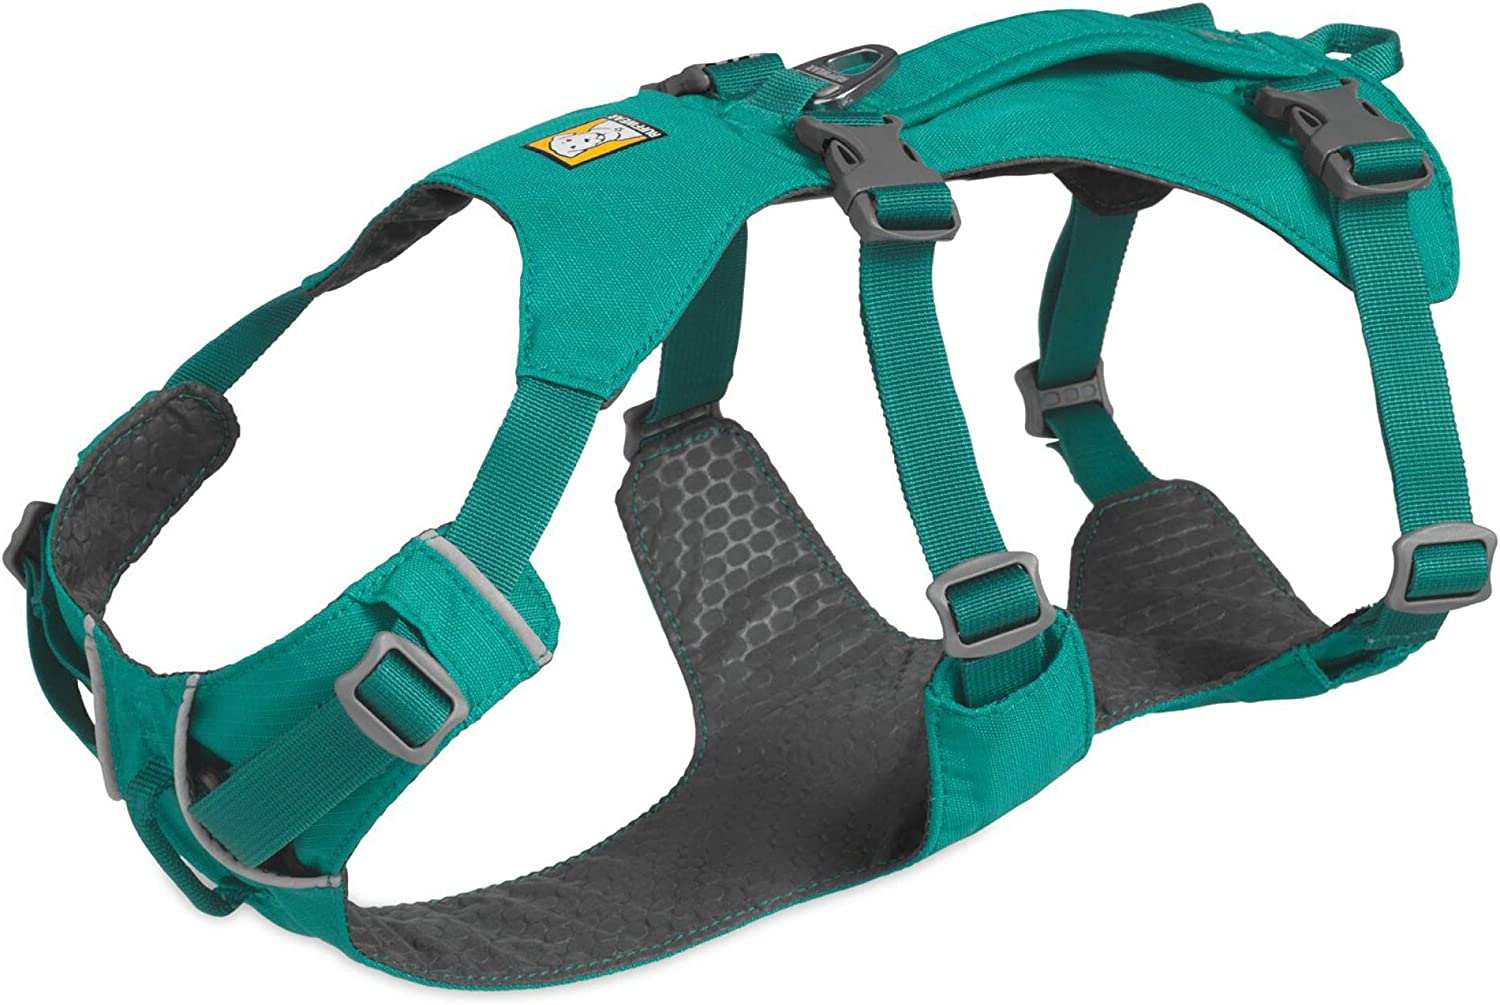 Discount is also underway RUFFWEAR Flagline Courier shipping free shipping Lightweight Multi-Purpose Dogs Harness for